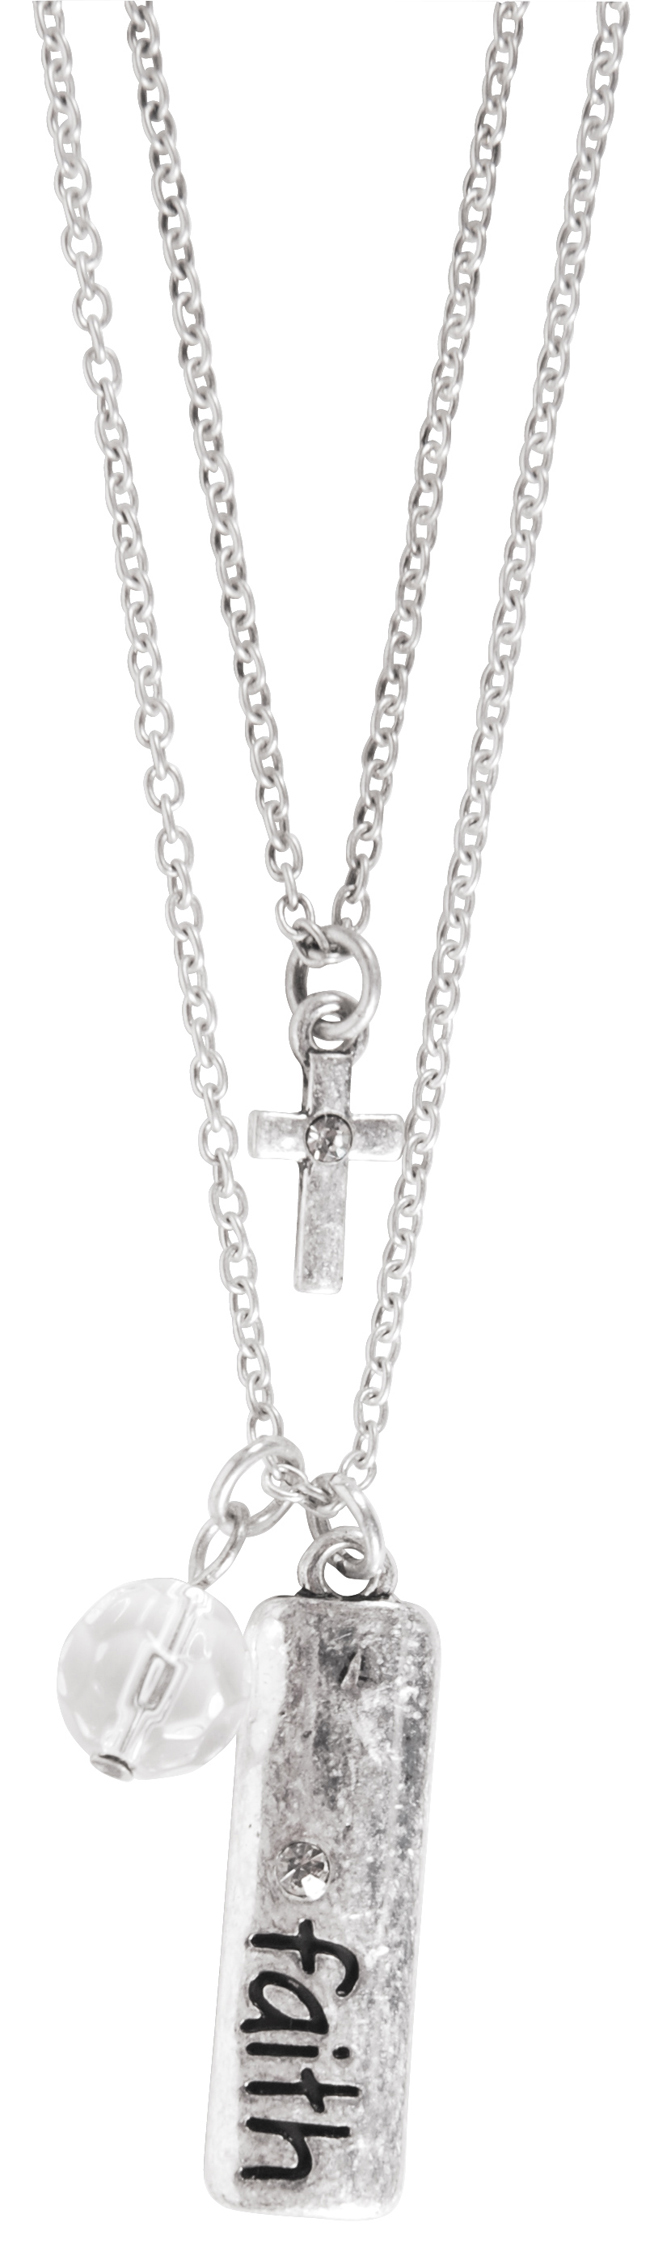 Charm Necklace - Cross Jewel